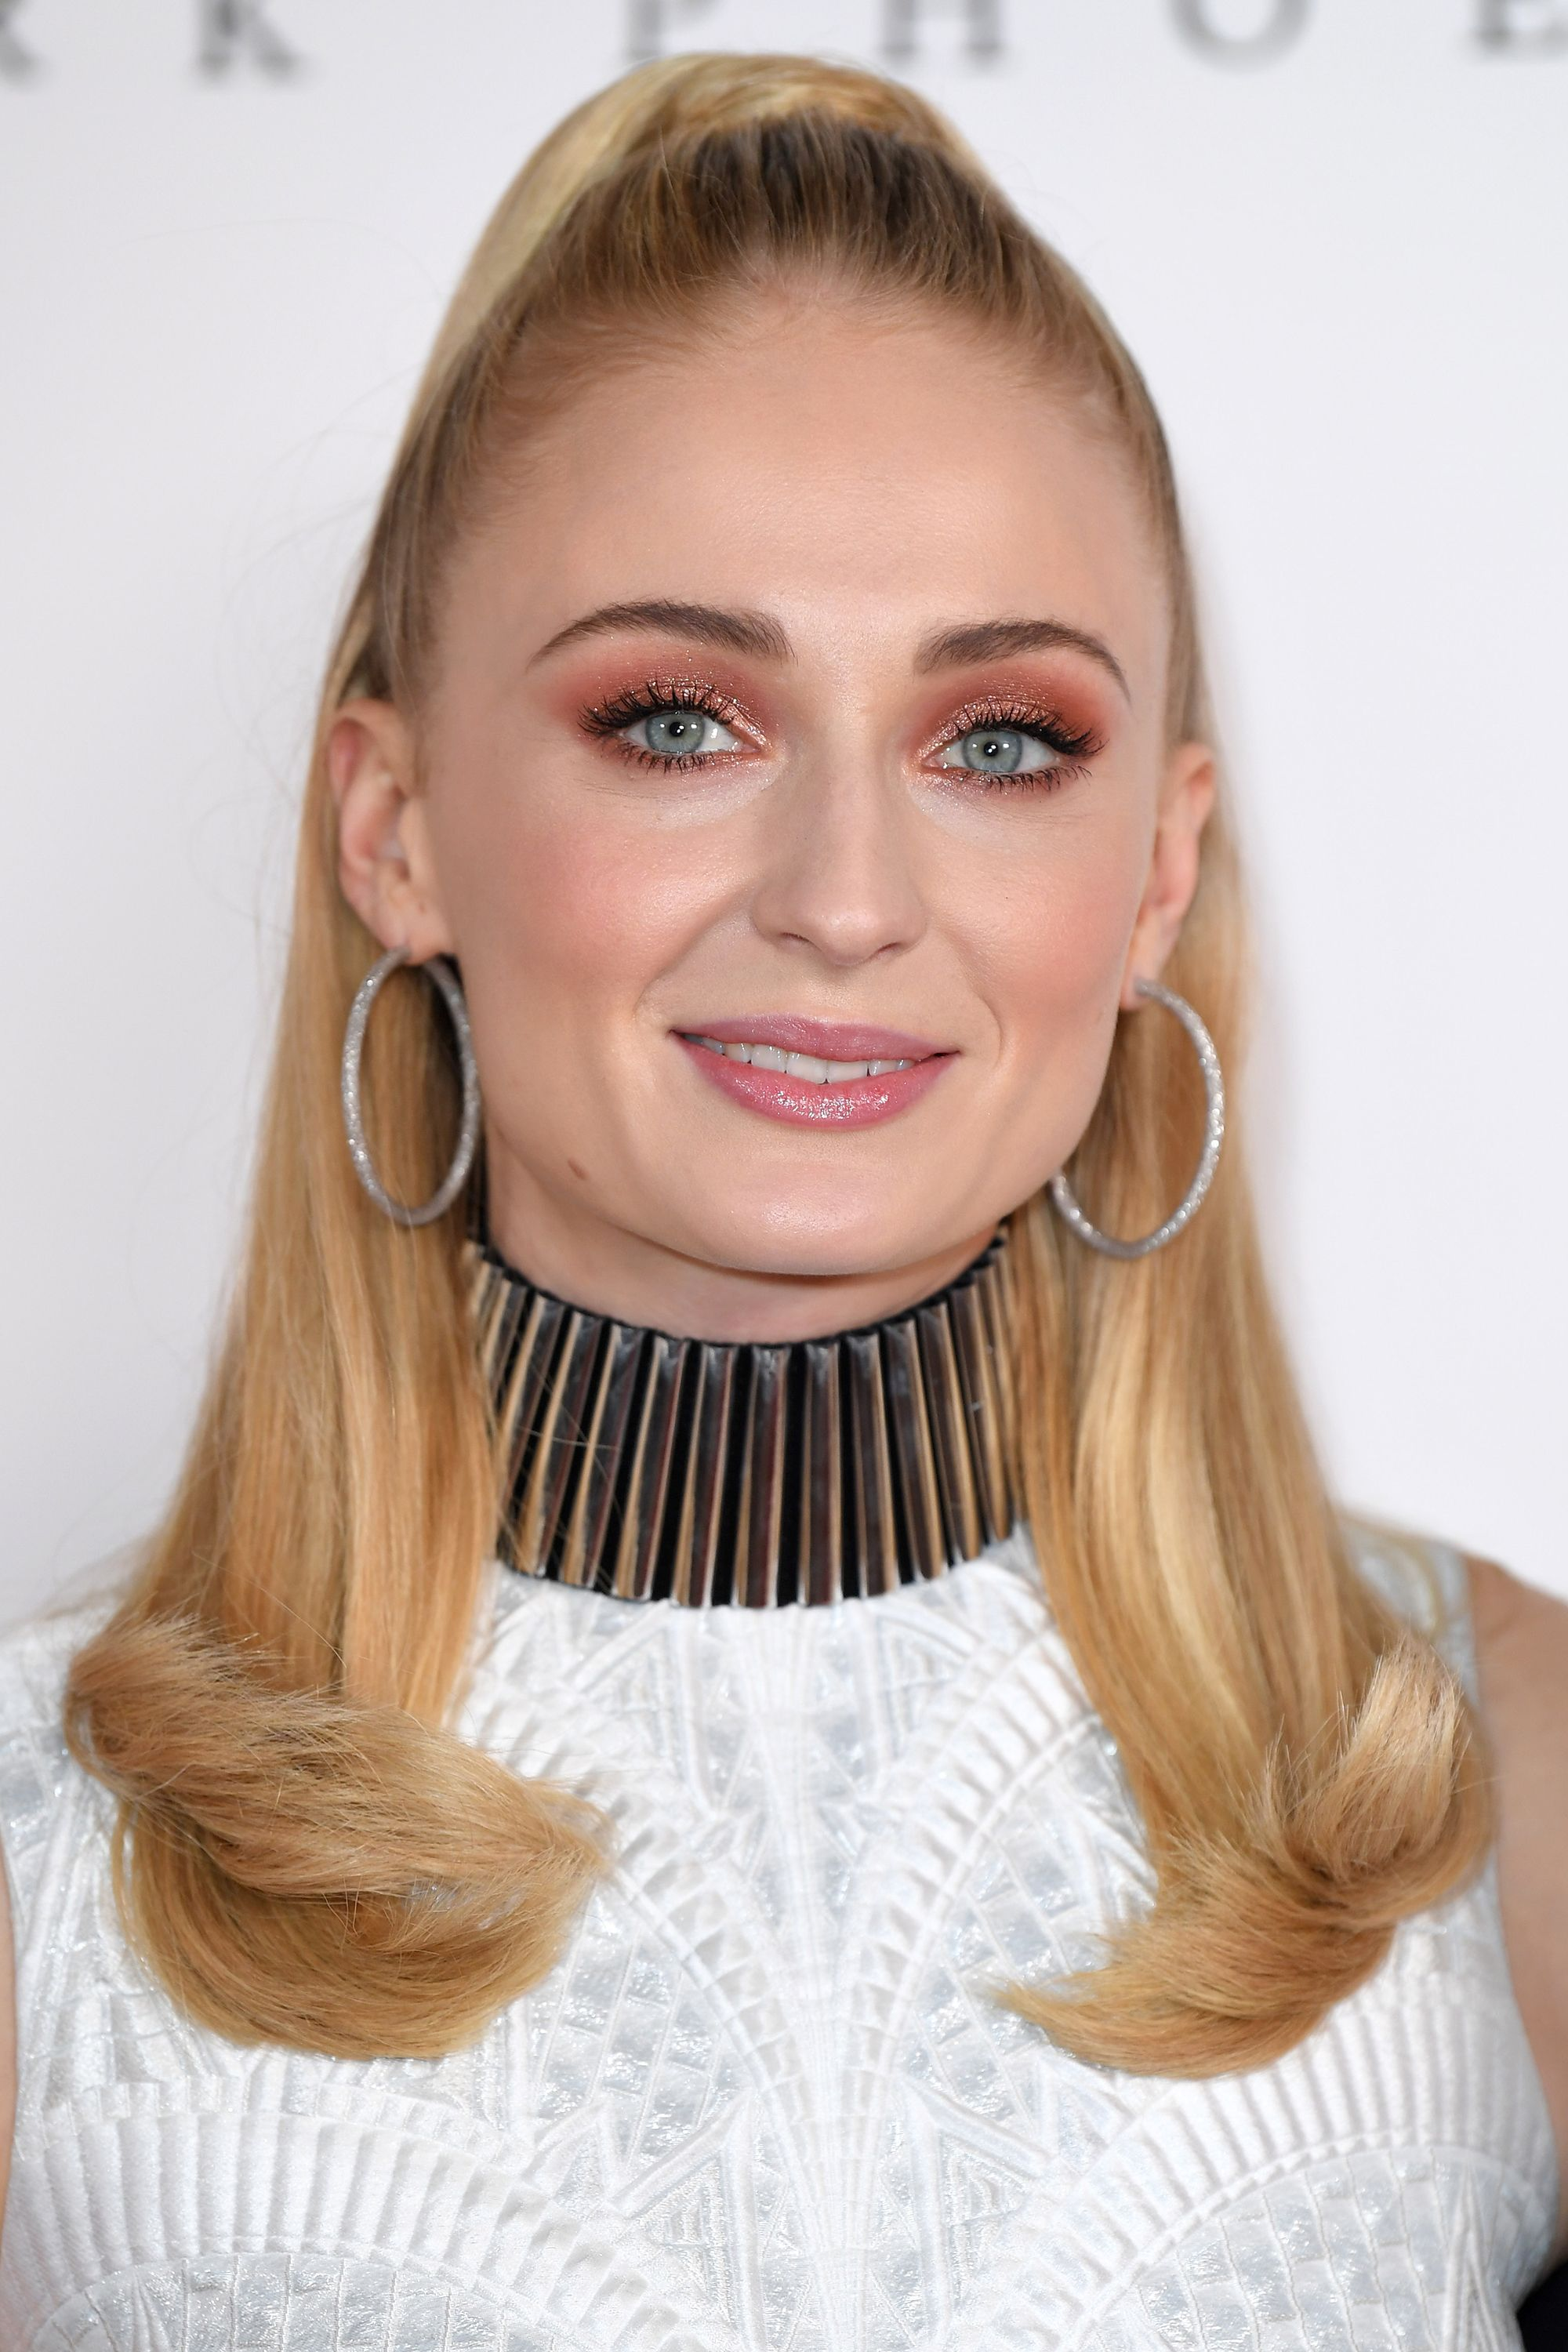 79aed31f608 Daily beauty inspiration for 2019 - Best celebrity beauty looks